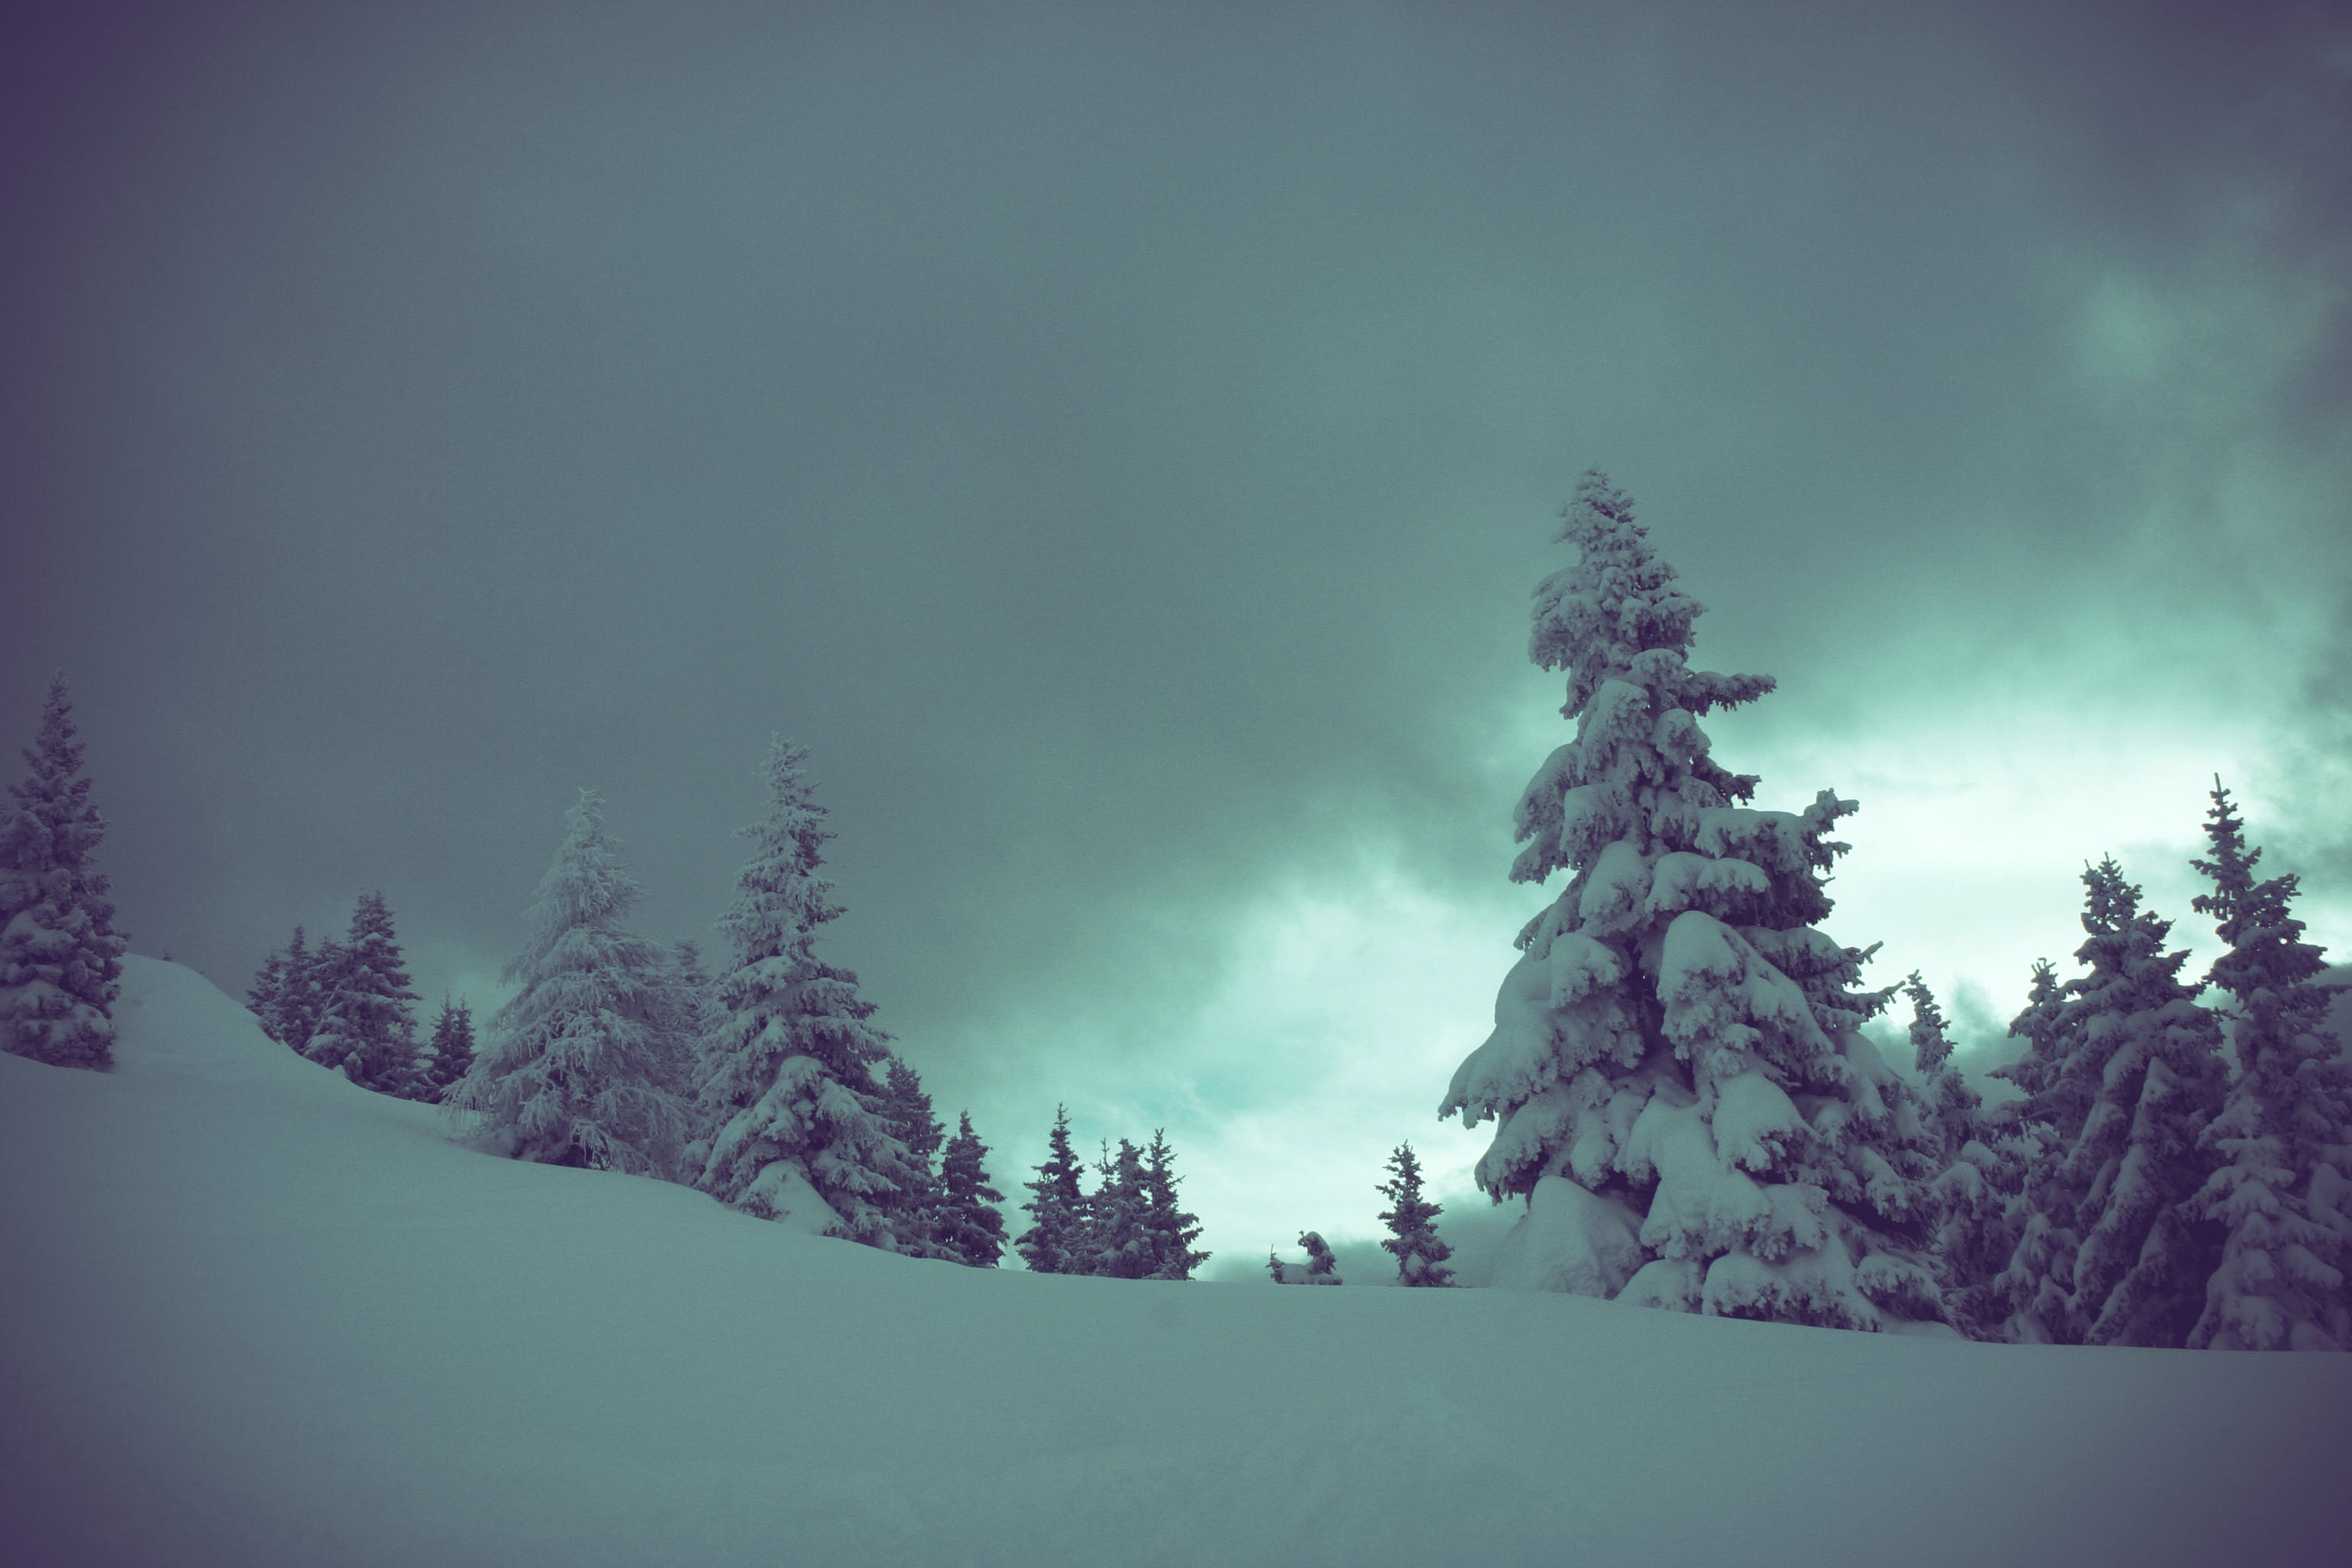 Snow Covered Pine Trees Under Cloudy Skies